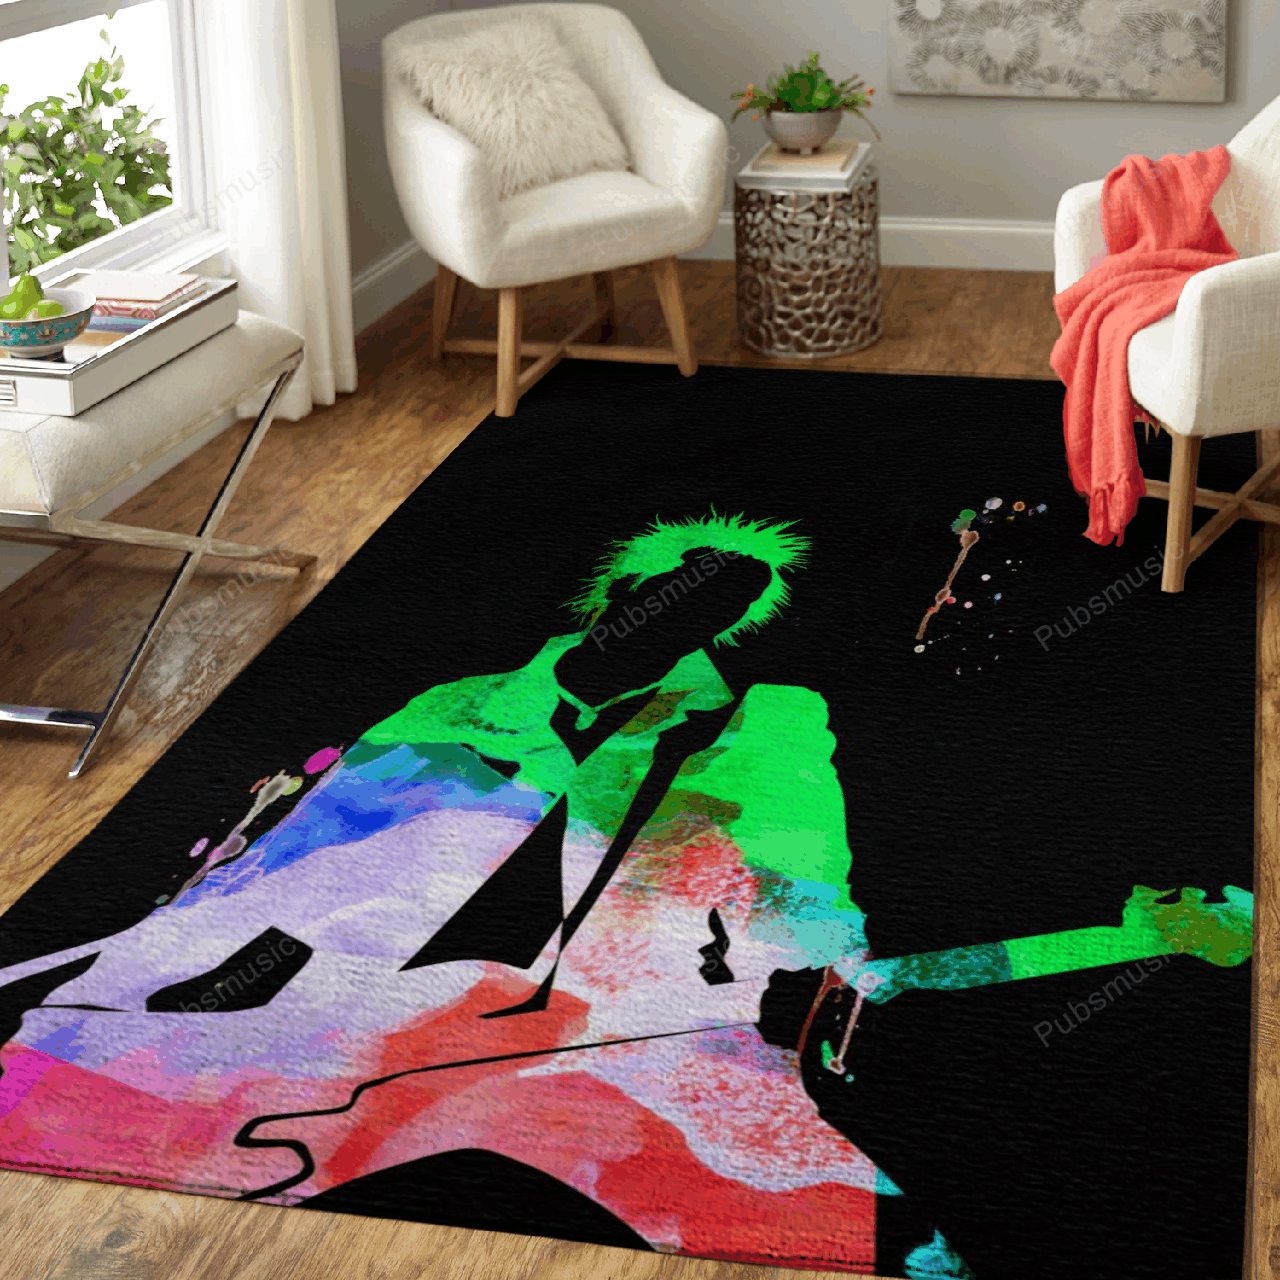 Sex Pistols Watercolor - Music Legends On Stage Art For Fans Area Rug Living Room Carpet Floor Decor